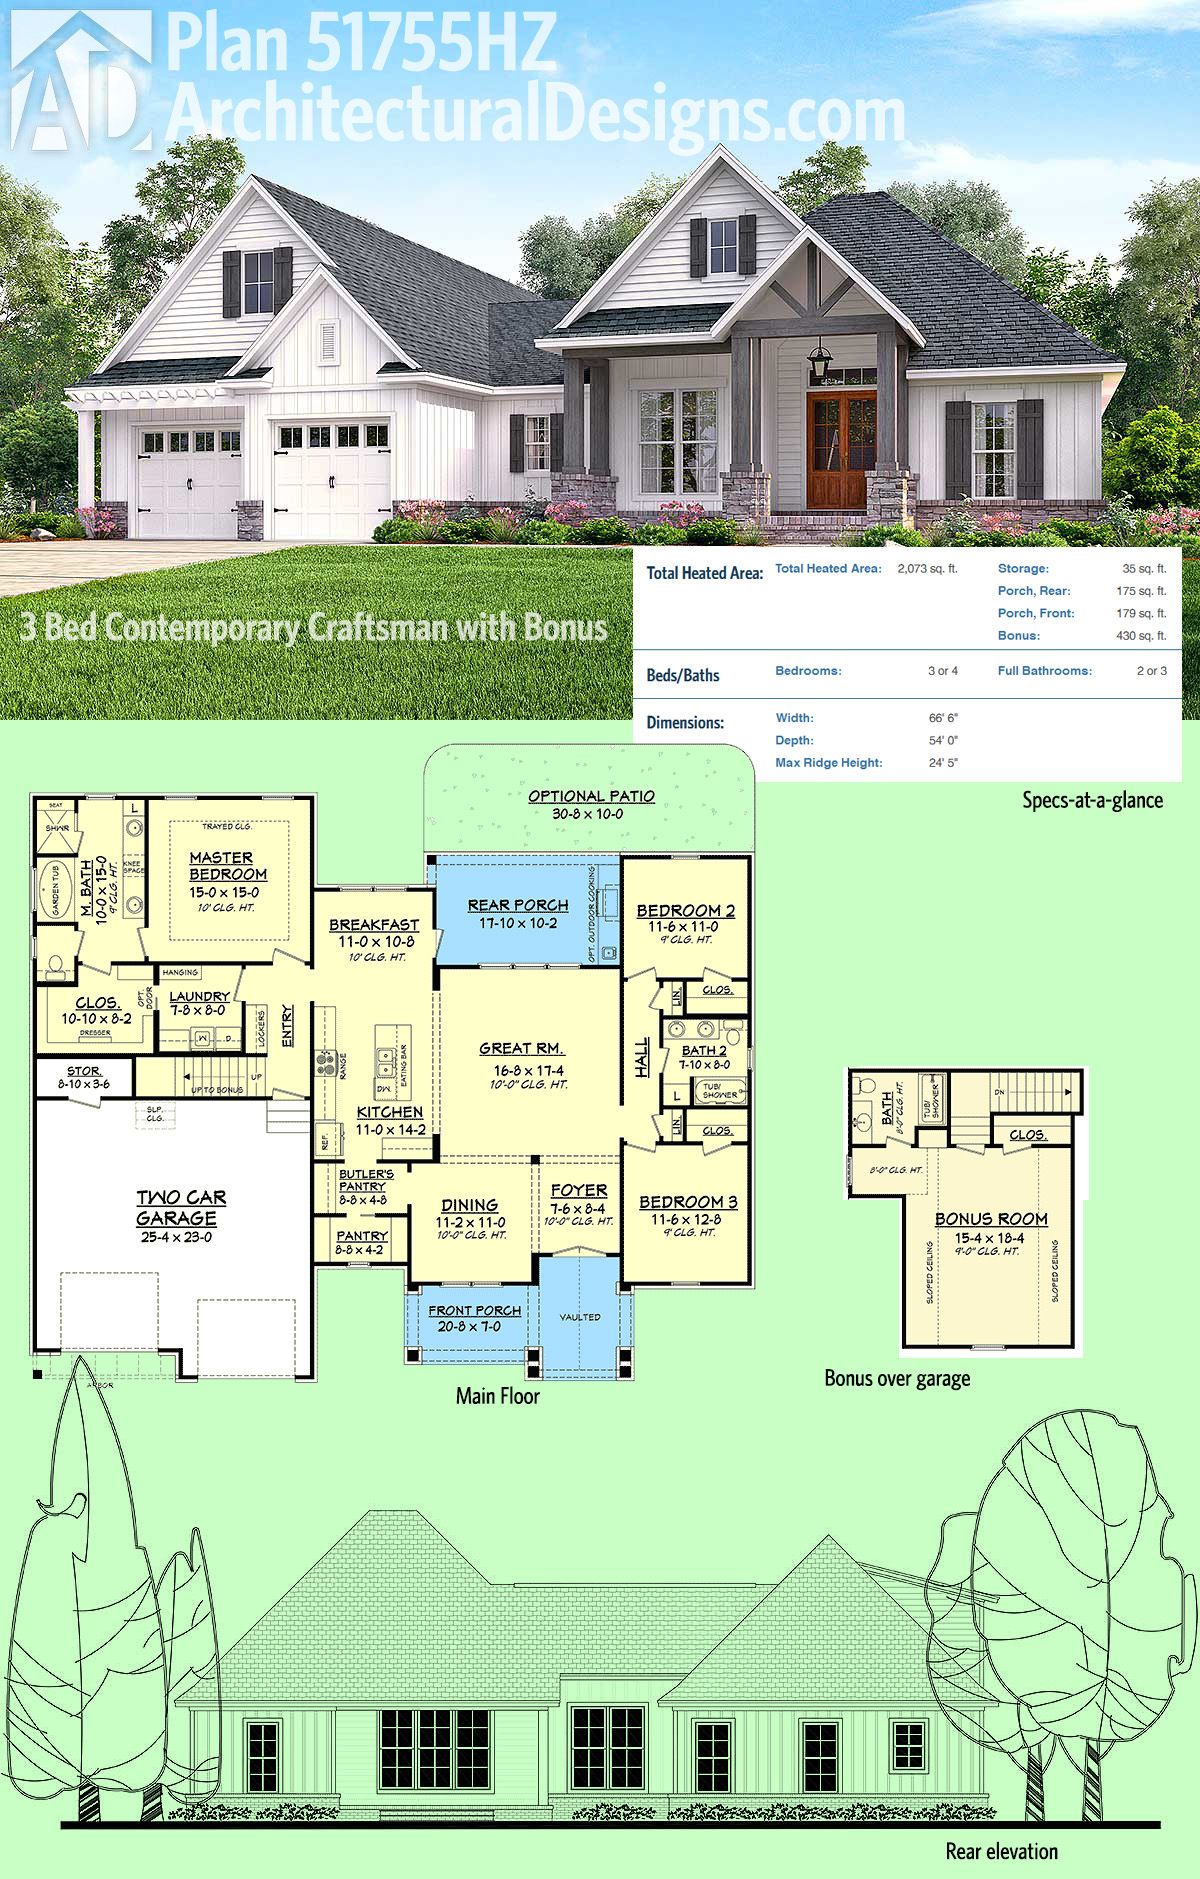 Architectural designs house plan hz is  bed contemporary craftsman design with bonus room bath over the garage giving you flexibility to also rh co pinterest